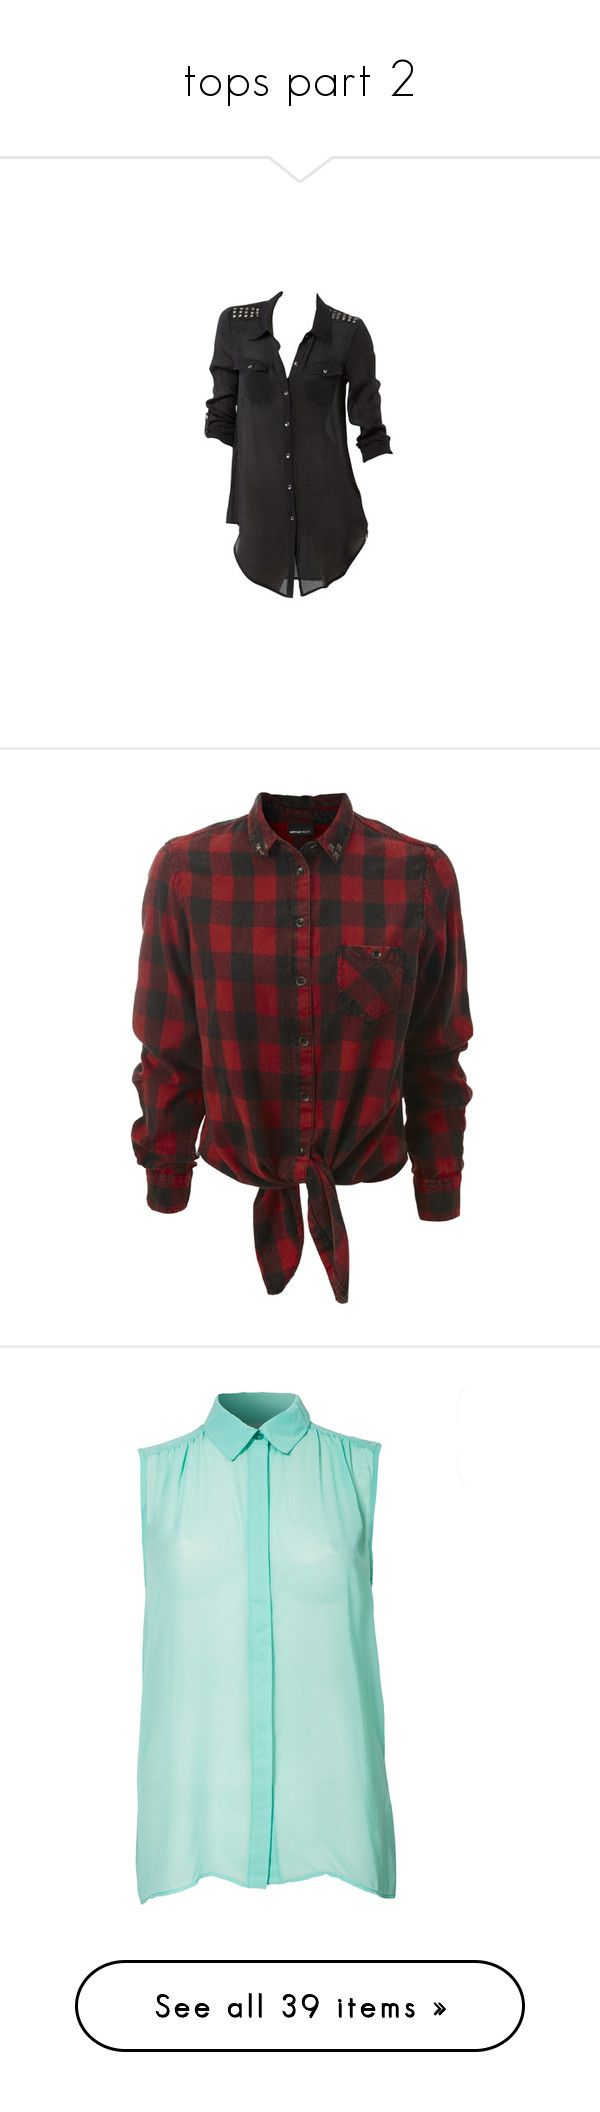 """""""tops part 2"""" by zoesears on Polyvore featuring tops, blouses, shirts, blusas, military top, military shirt, shirt top, bettina liano, shirt blouse and long sleeves"""